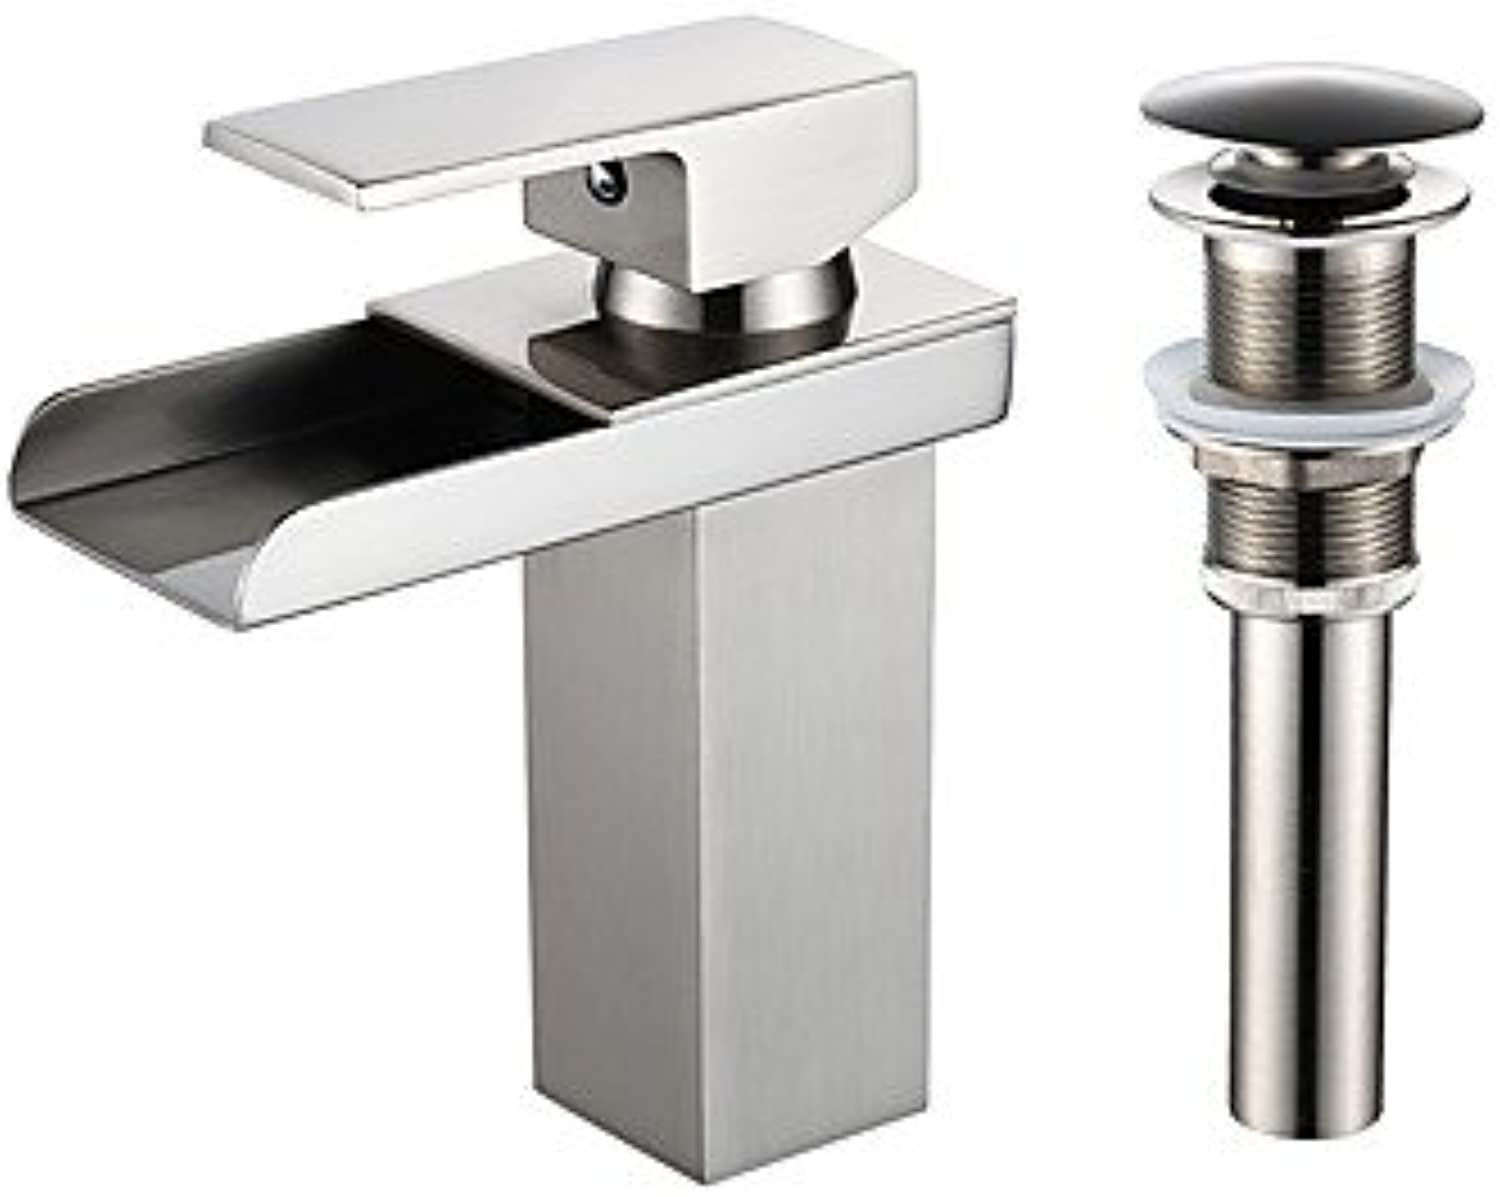 HZZymj-Centerset Waterfall with Ceramic Valve One Hole for Nickel Brushed , Bathroom Sink Faucet